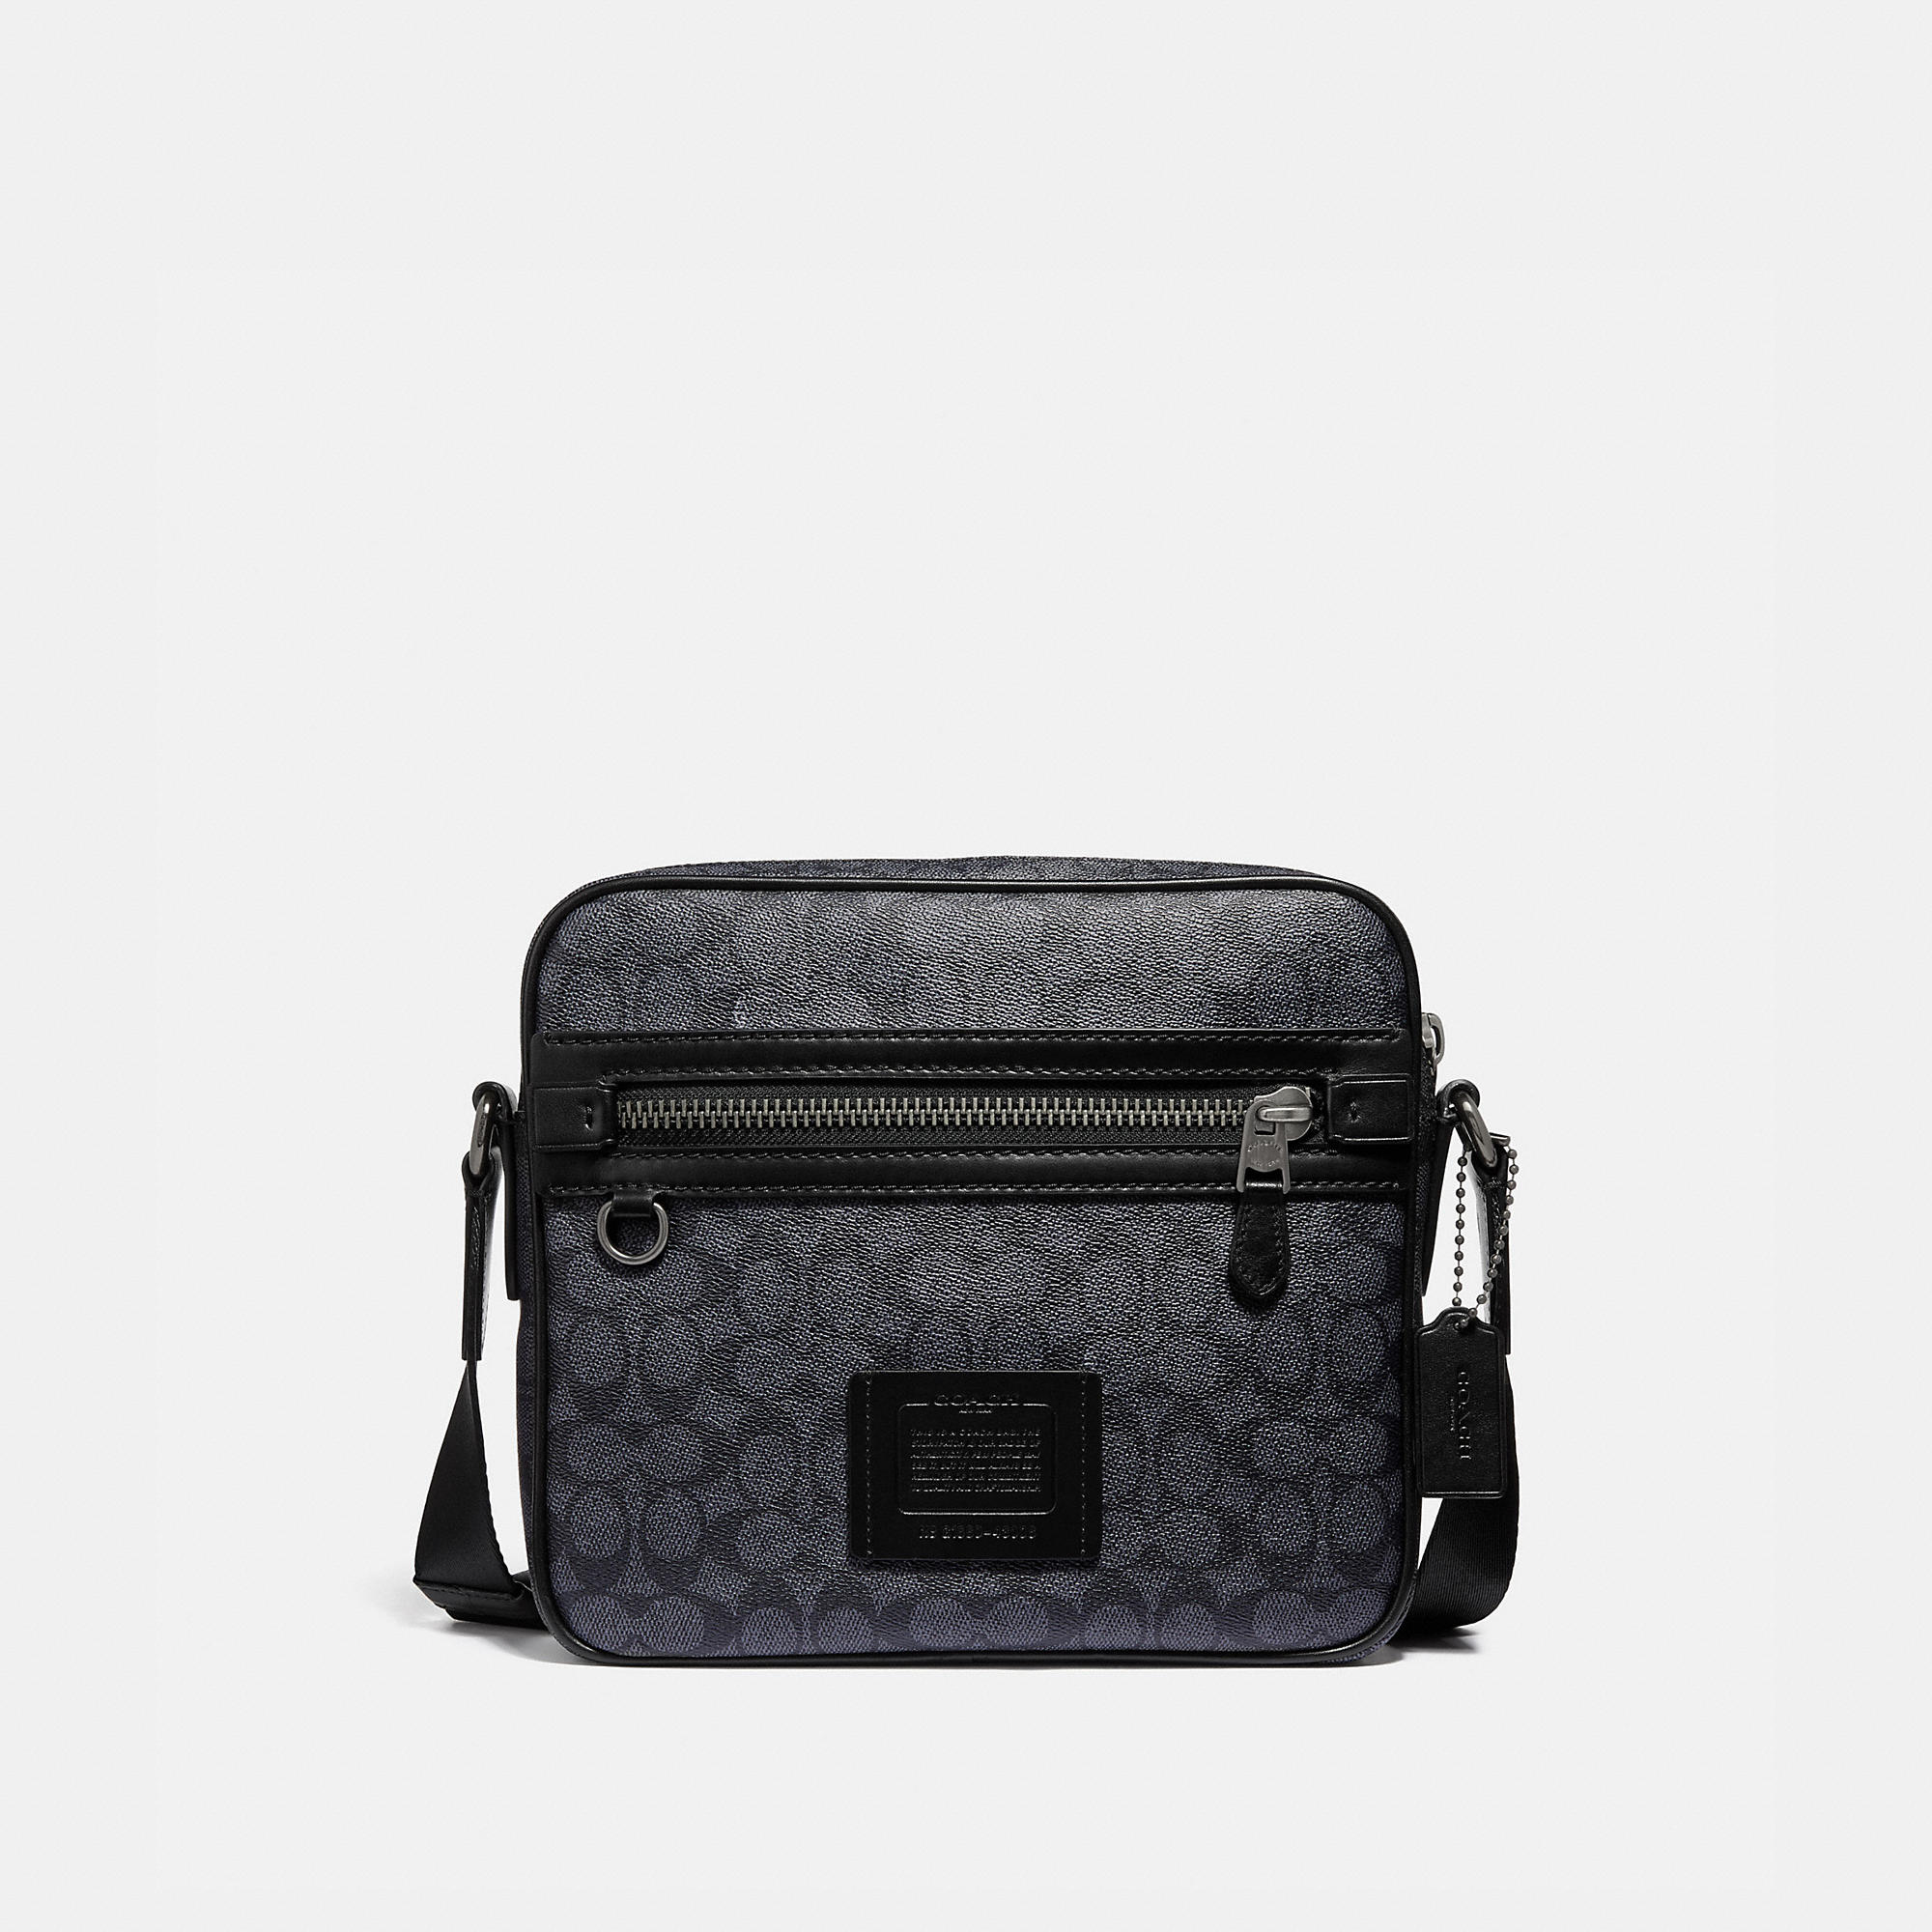 757ca6f58 Coach Dylan 27 In Signature Canvas | £395.00 | Port